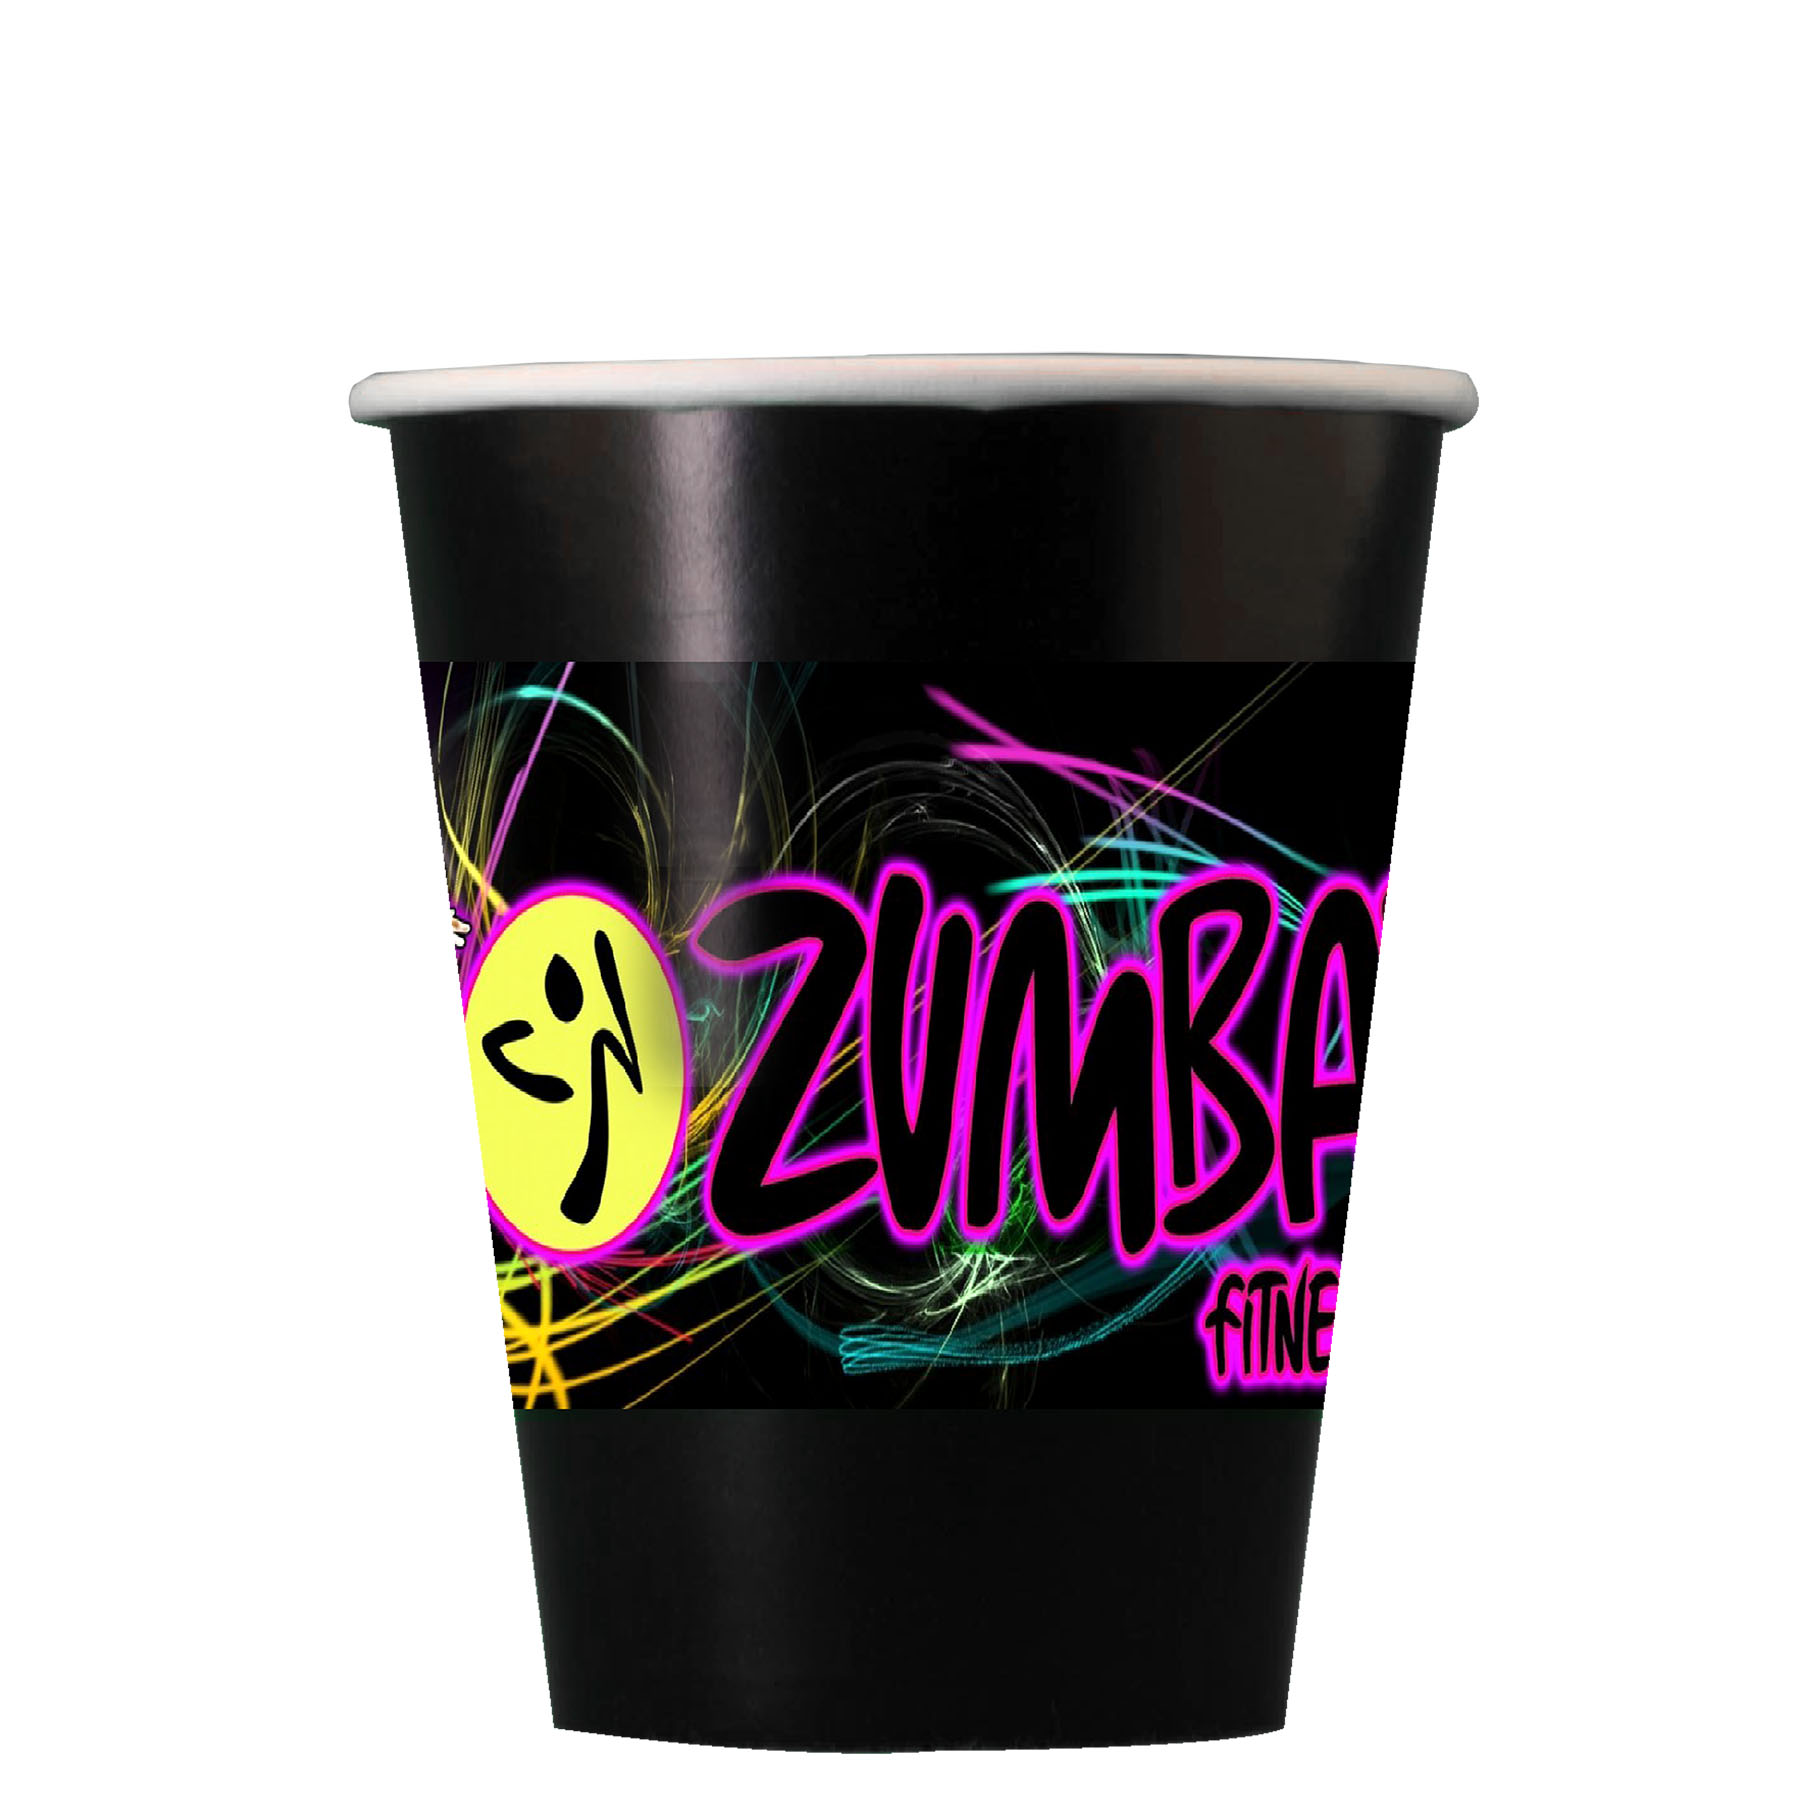 Digital Colorware 9 Oz. Paper Cup - The 500 Line